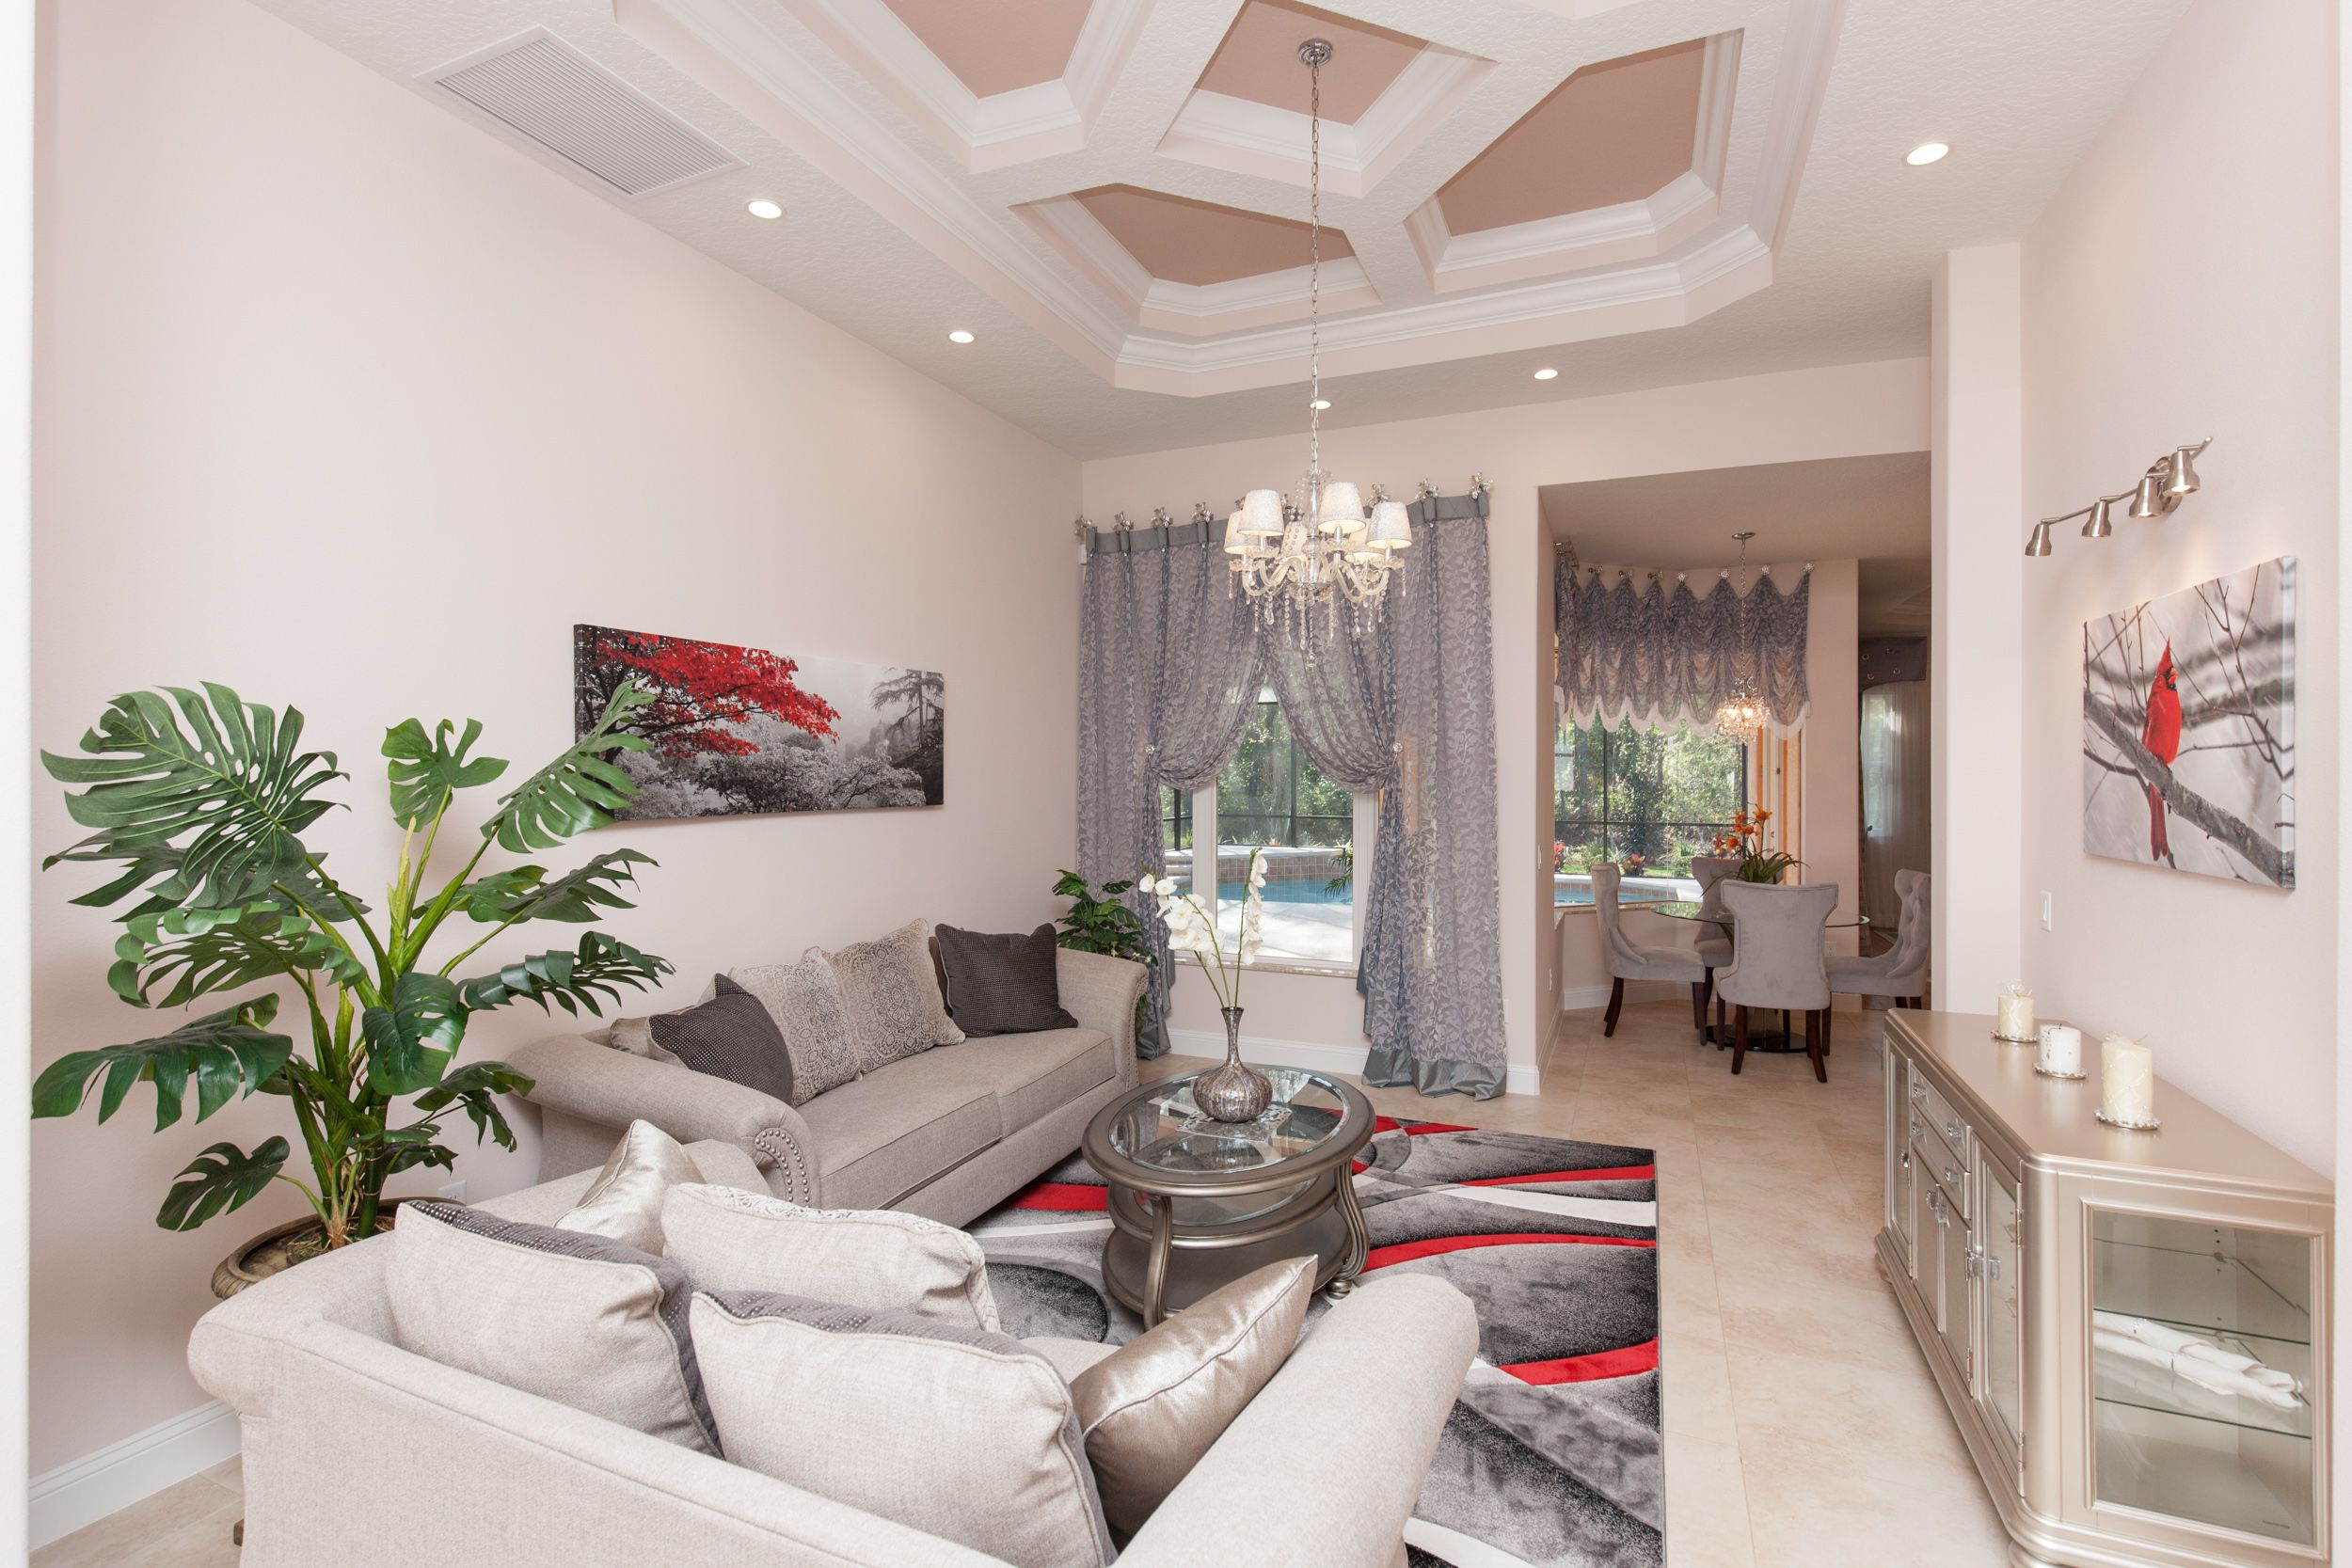 Living Area featured in the Alisa By Florida Green Construction in Daytona Beach, FL